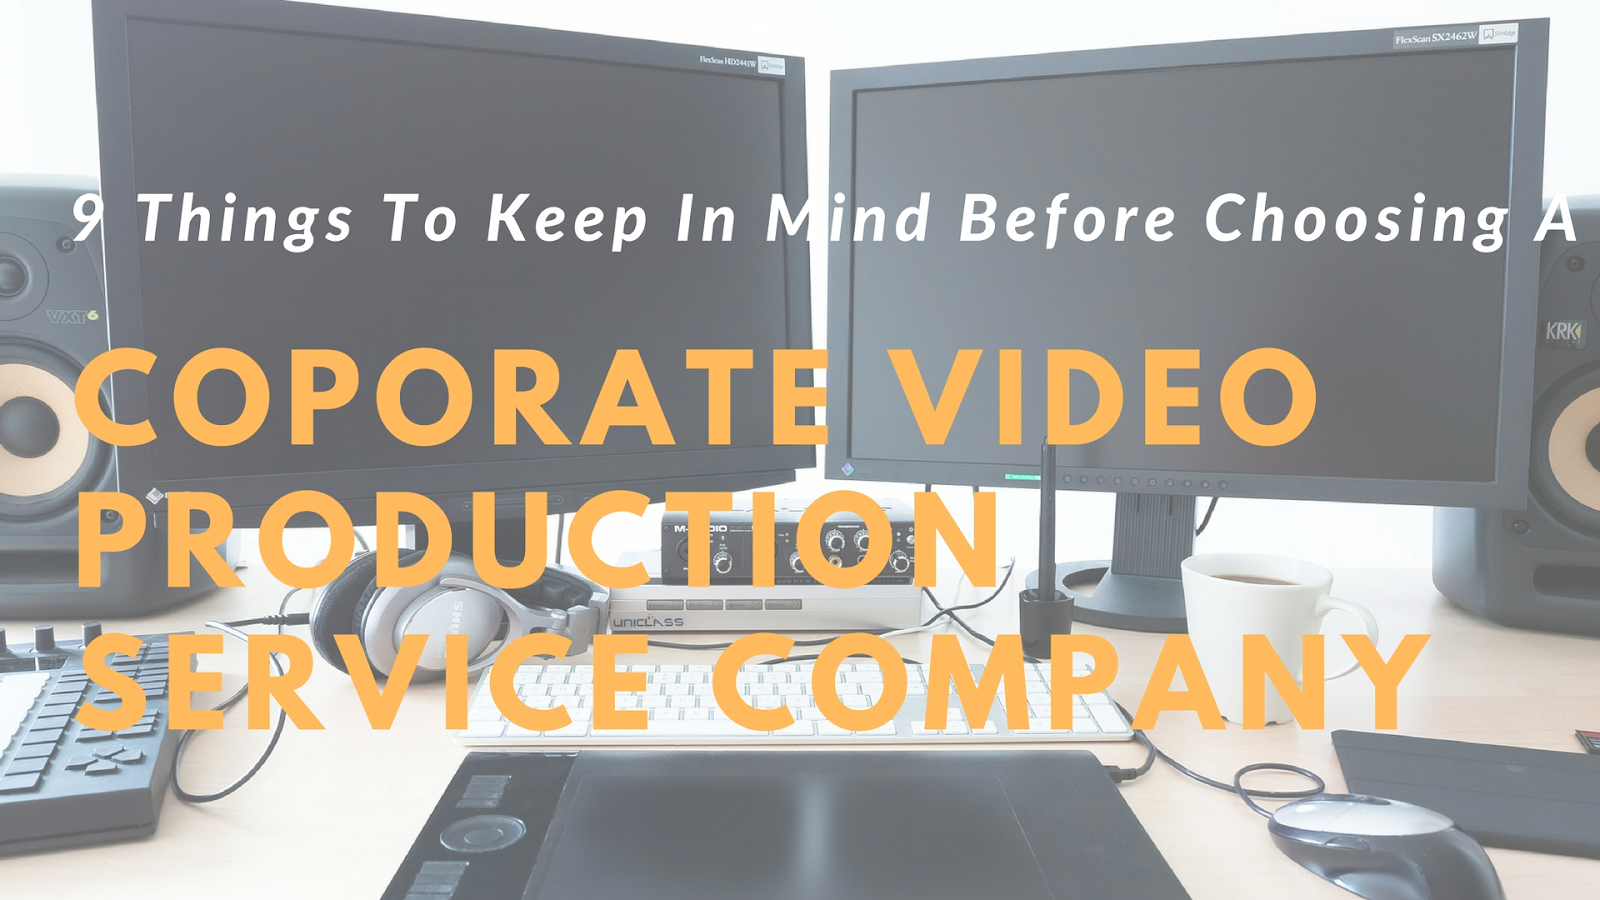 9 Things To Keep In Mind Before Choosing A Corporate Video Production Service Company.